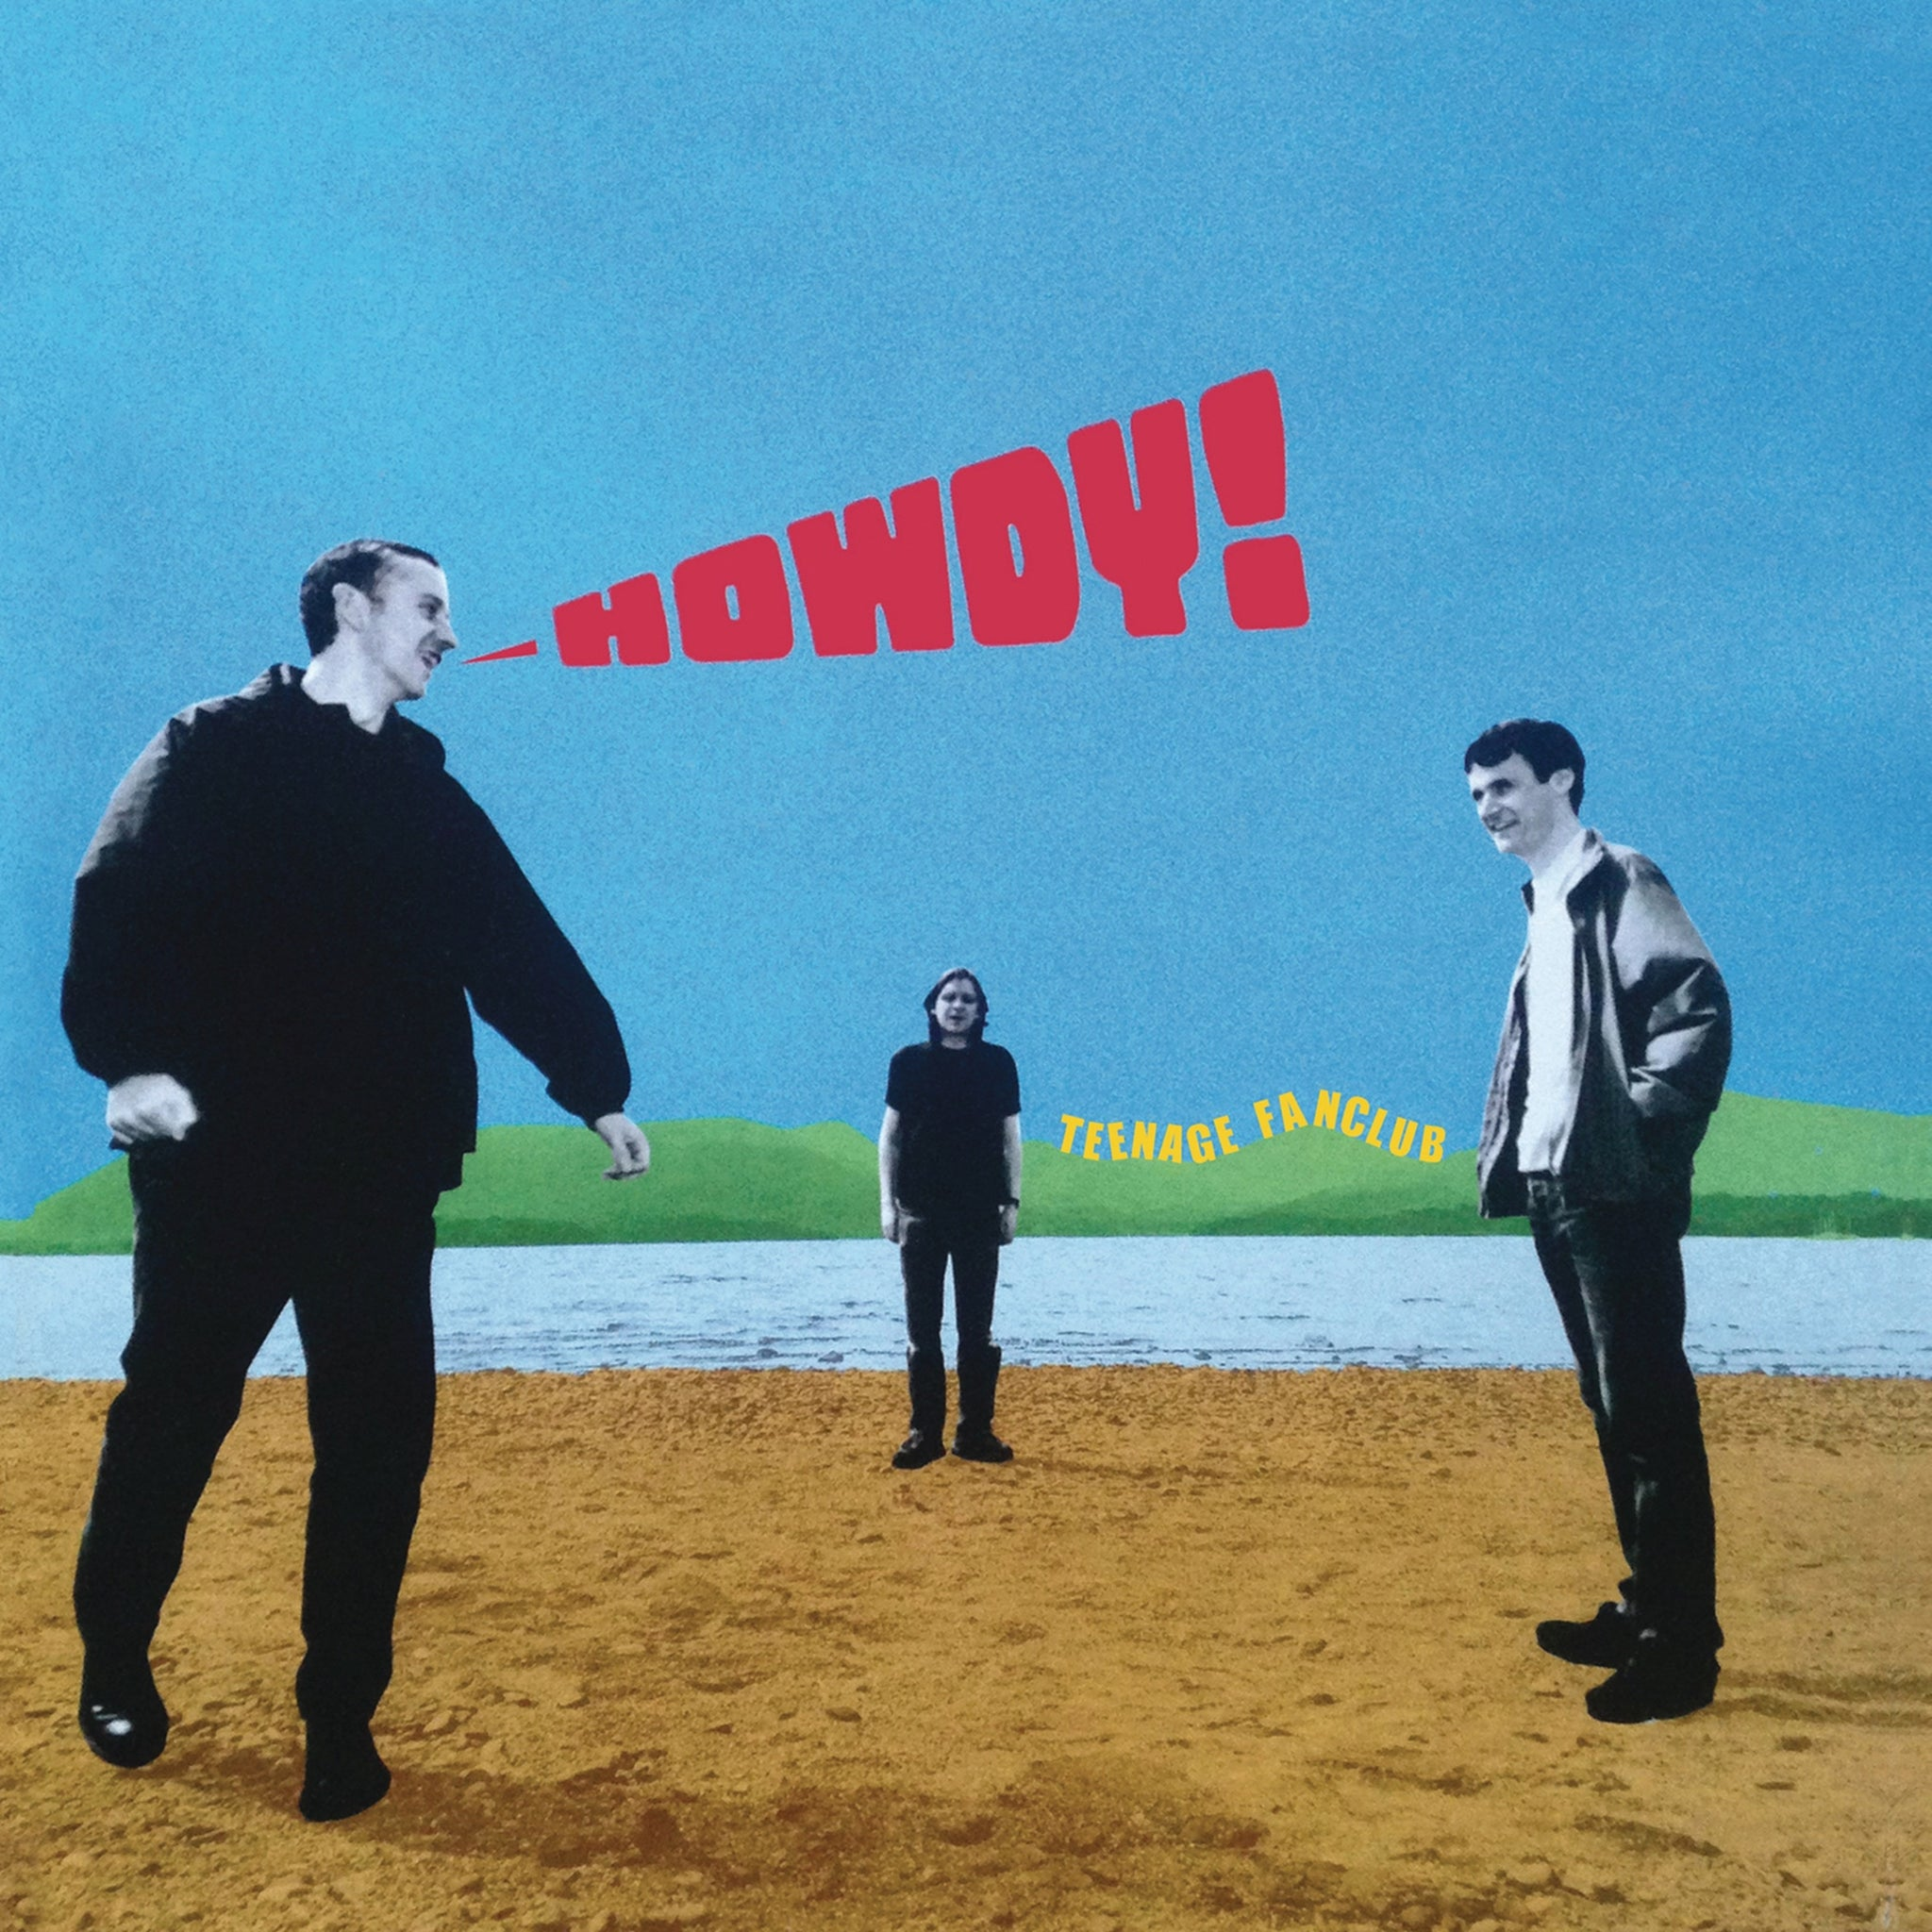 Teenage Fanclub - Howdy!